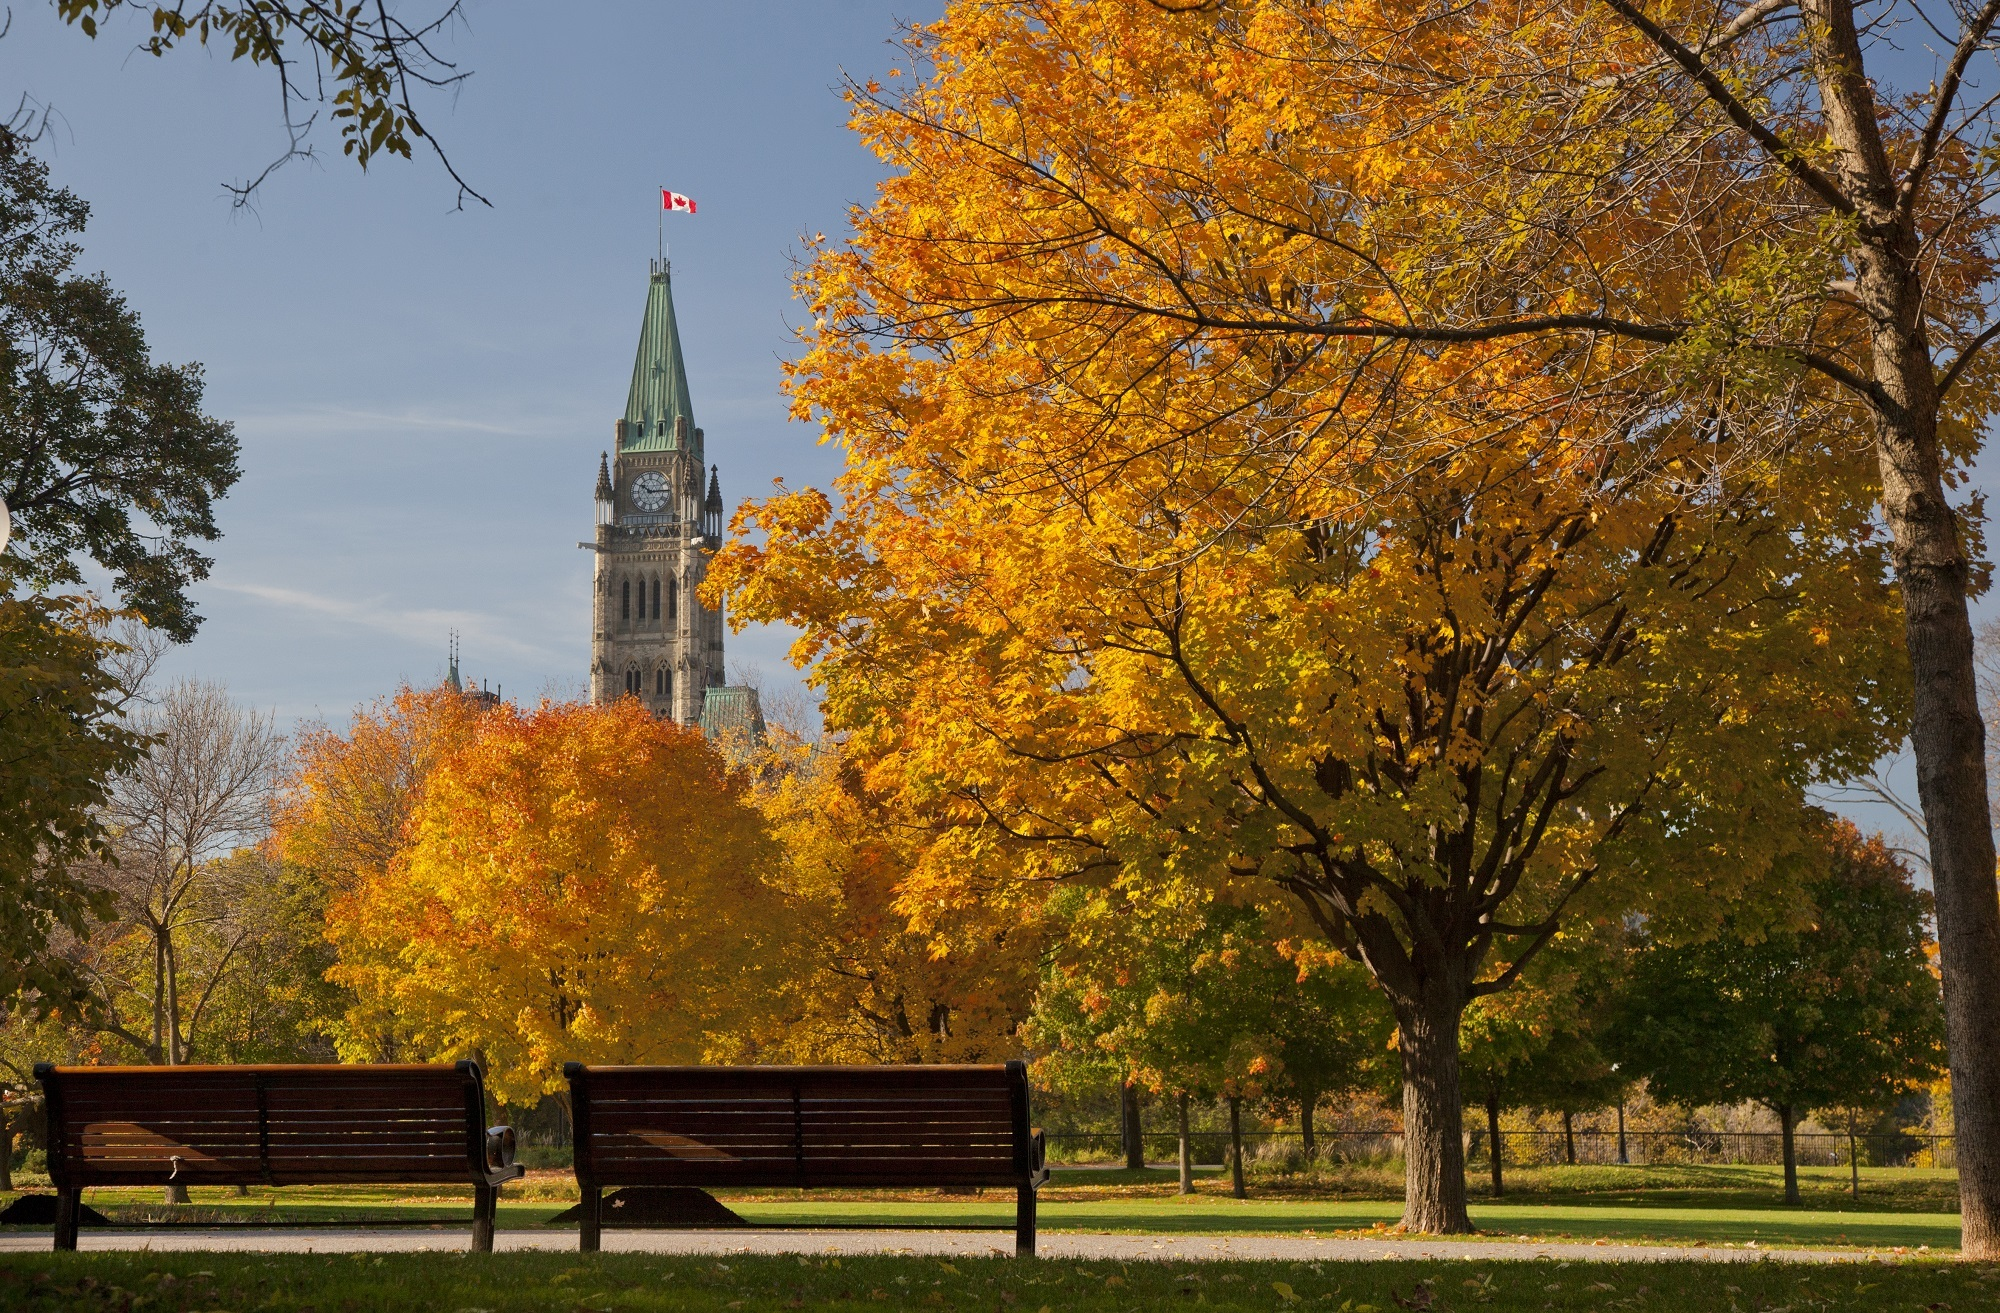 Major's Hill Park during Fall Rhapsody. Benches and trees with oranges leaves in the foreground and Parliament Hill in the background.